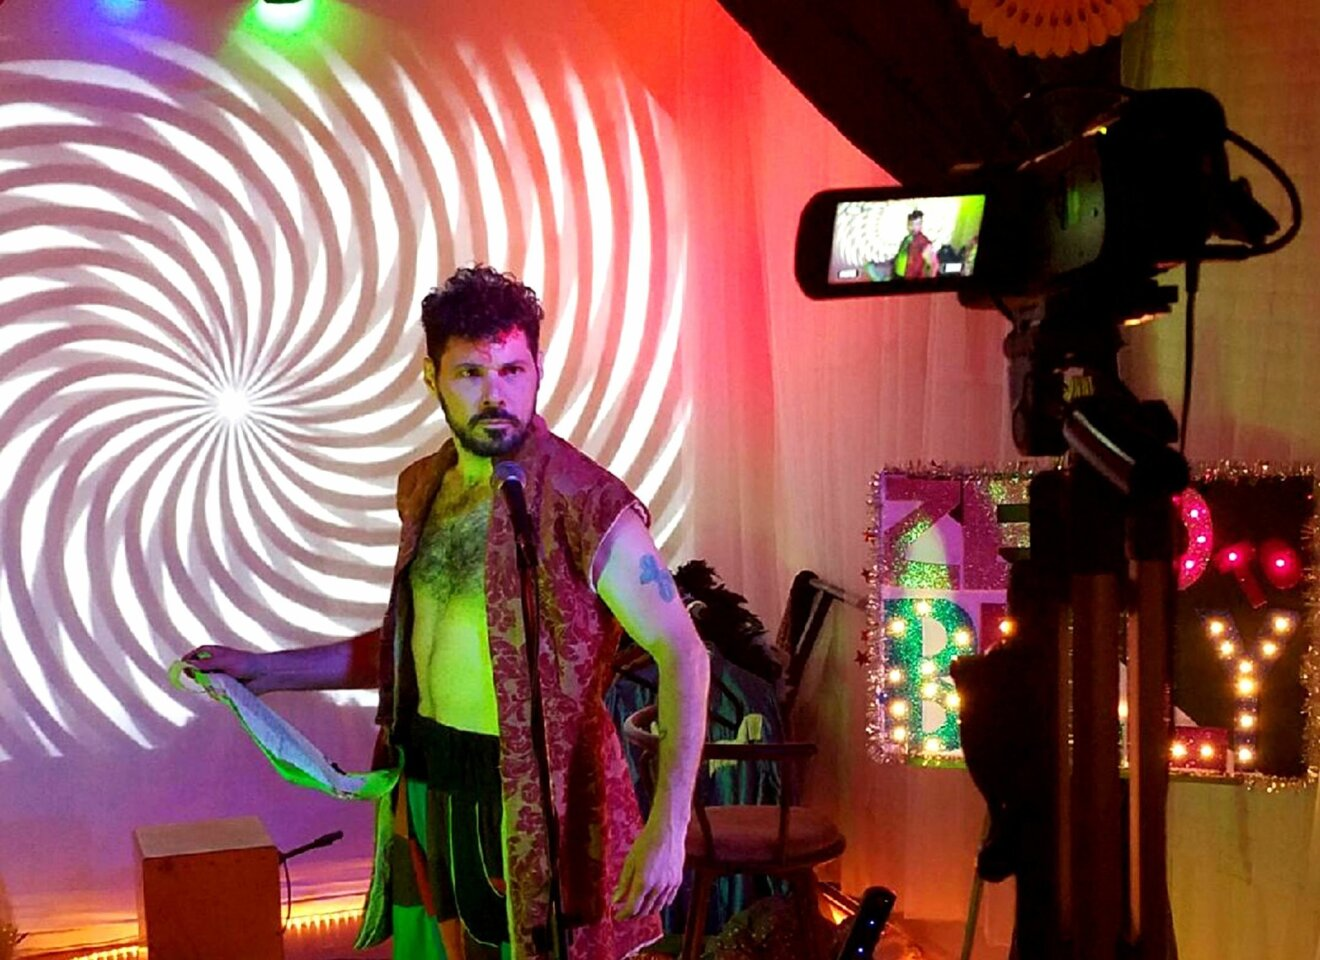 Showman Bushwalla reinvents himself